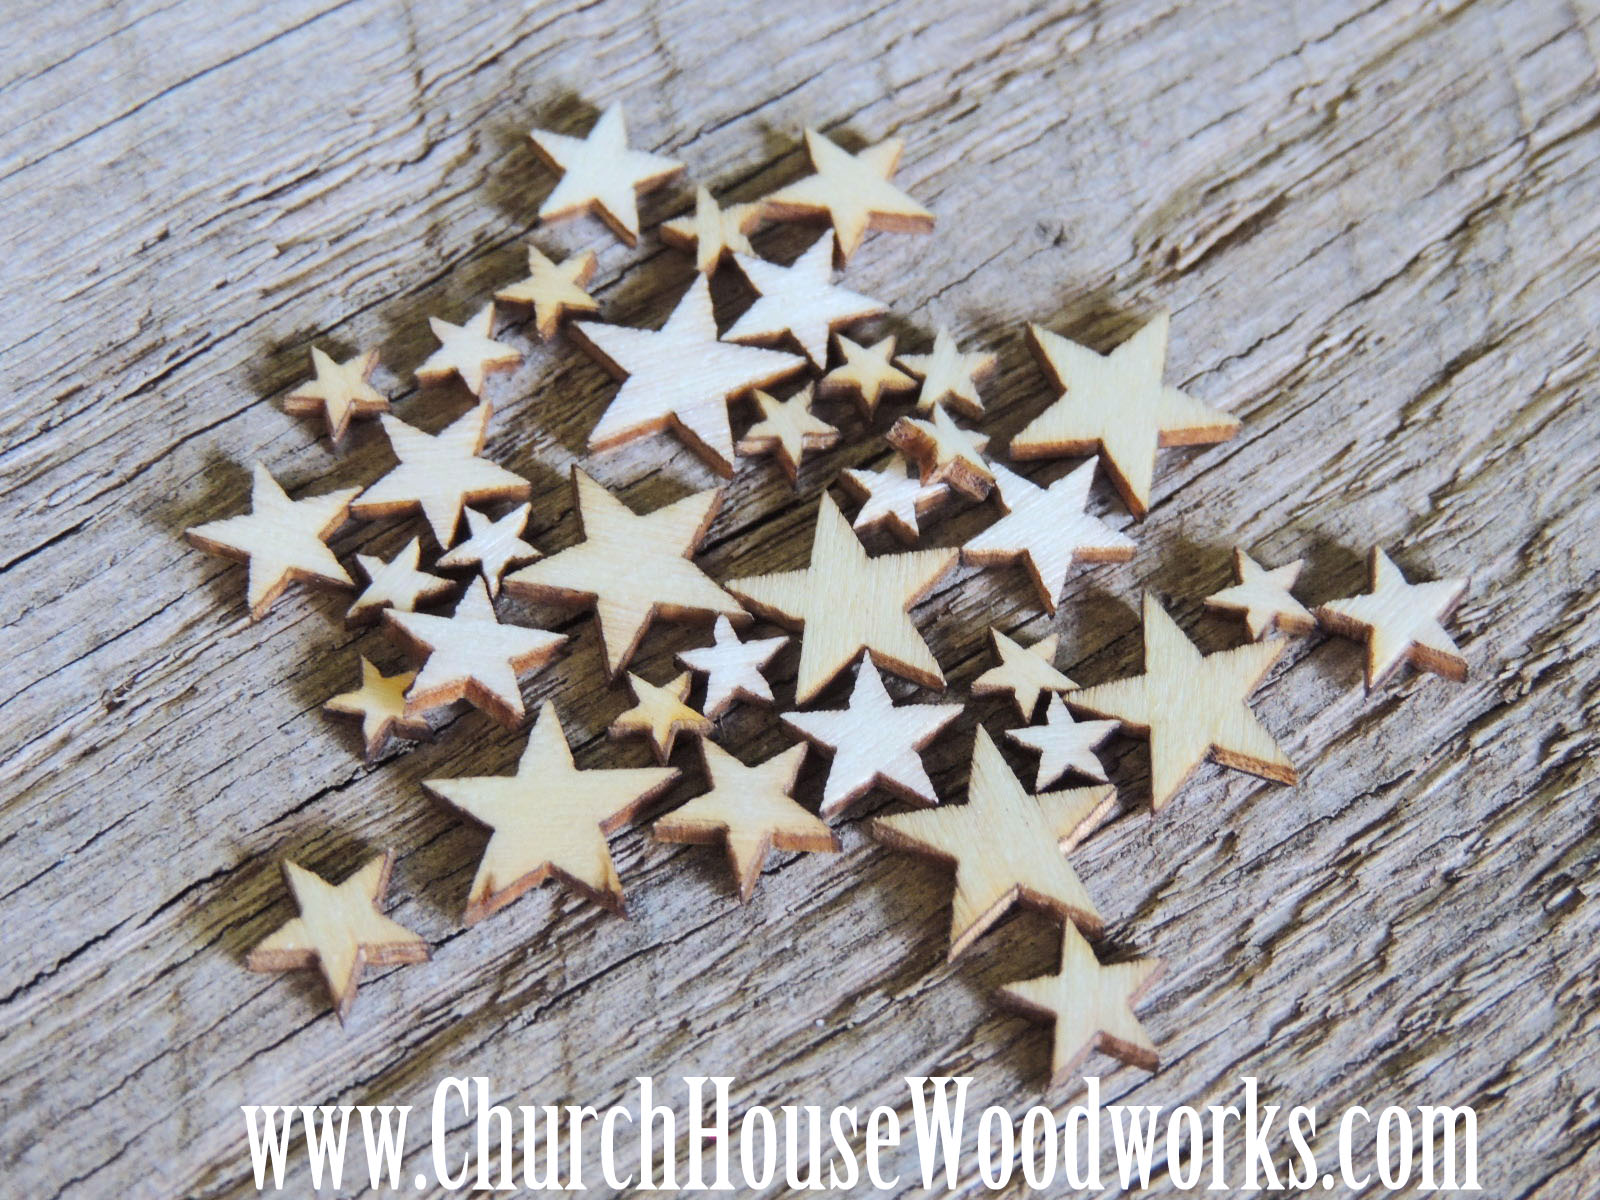 Rustic stars for crafts - 50 Tiny Mini Wood Stars Diy Crafts Or Rustic Wedding Decorations Wooden Centerpieces